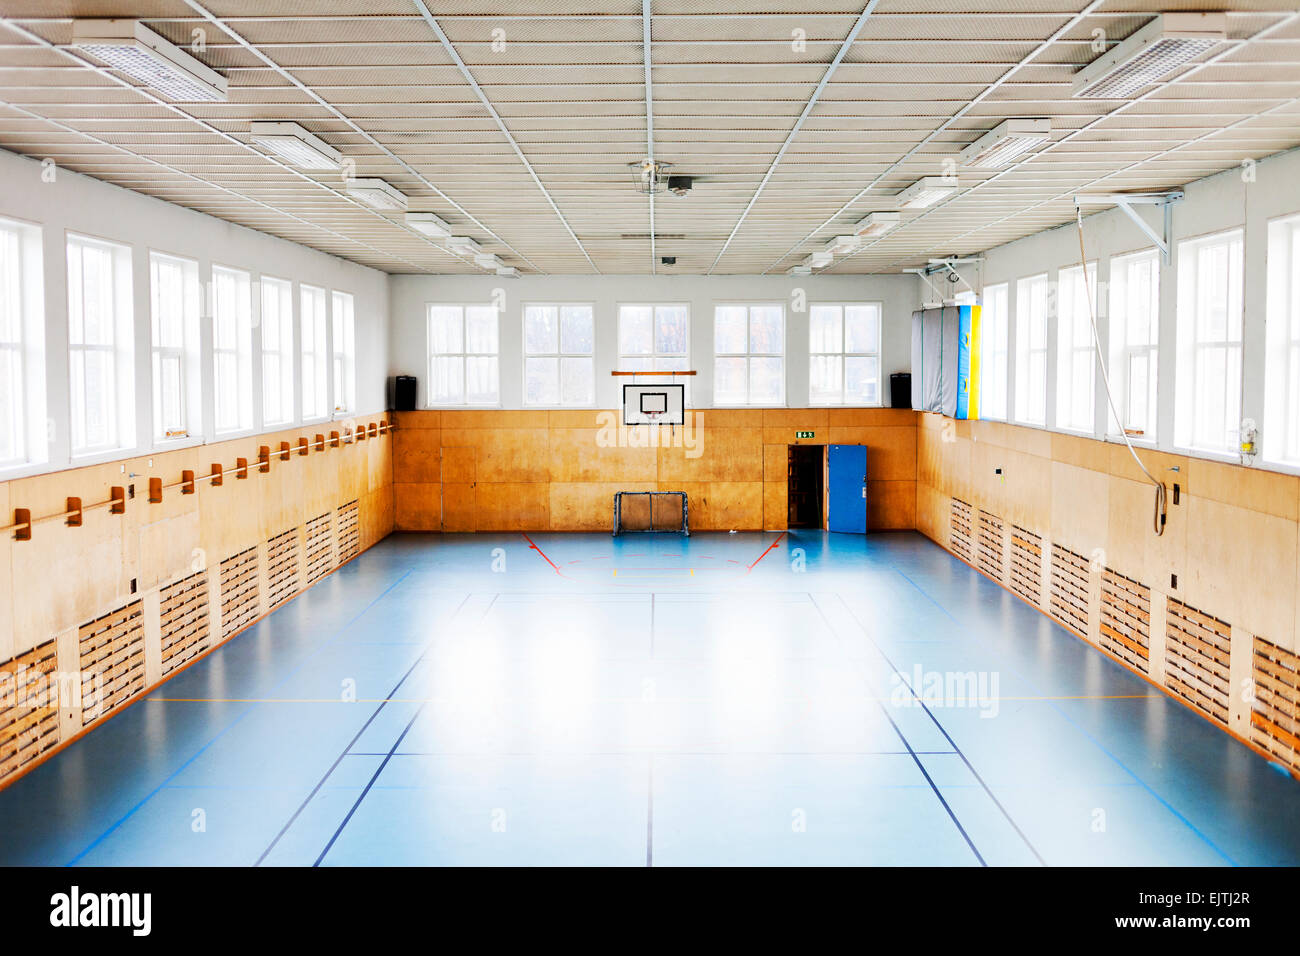 Stunning free indoor basketball courts pictures for Indoor basketball court plans